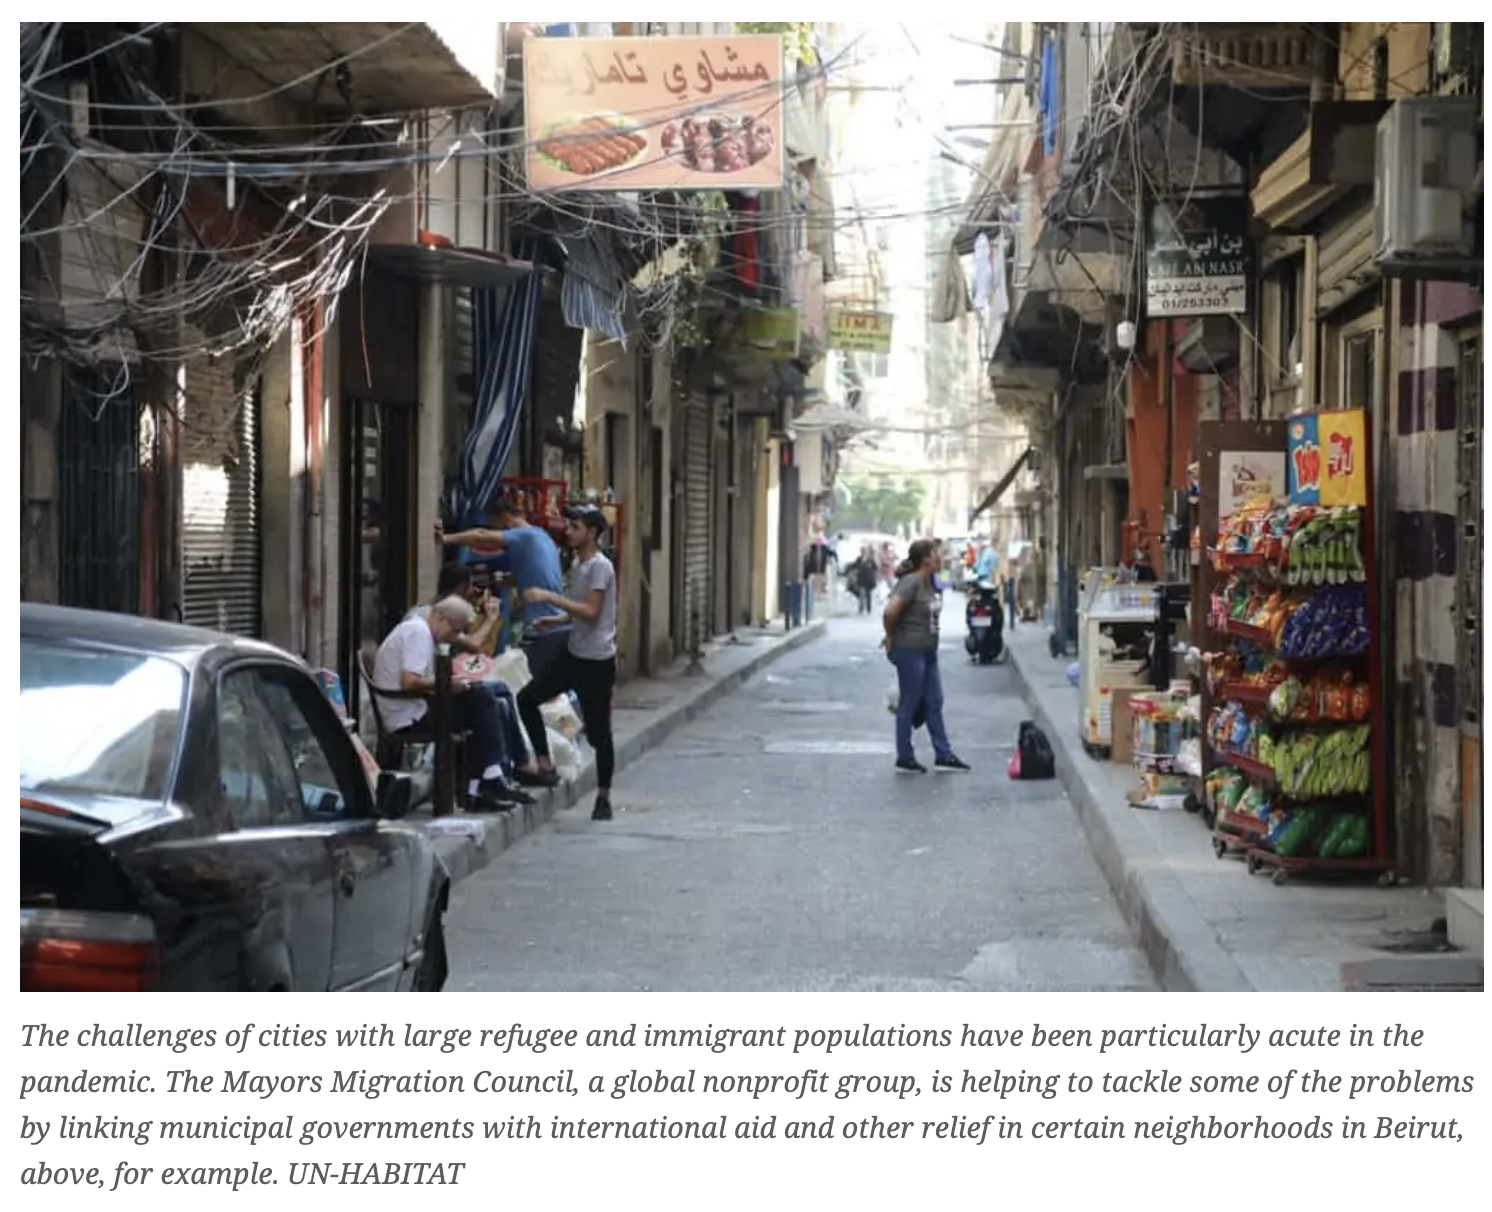 A Beirut street in a migrant neighborhood